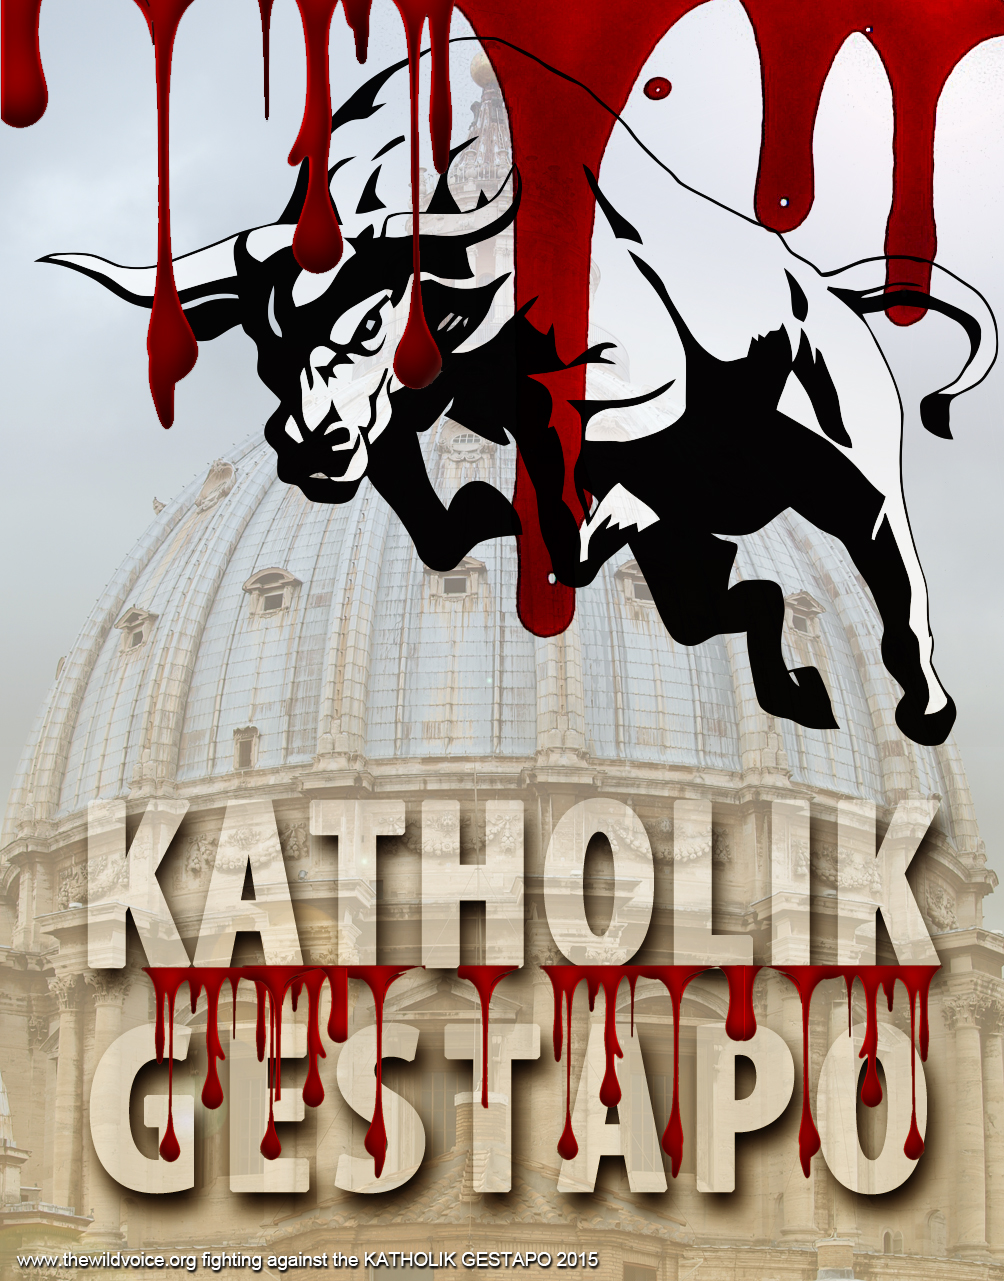 Katholik, Catholic, Gestapo, Freemasonry, Illuminati, zionists, Vatican, sects, factions, secret societies, The WILD VOICE, Pope Francis, False Prophet, Jorge Mario Bergoglio, evil, satan, antichrist